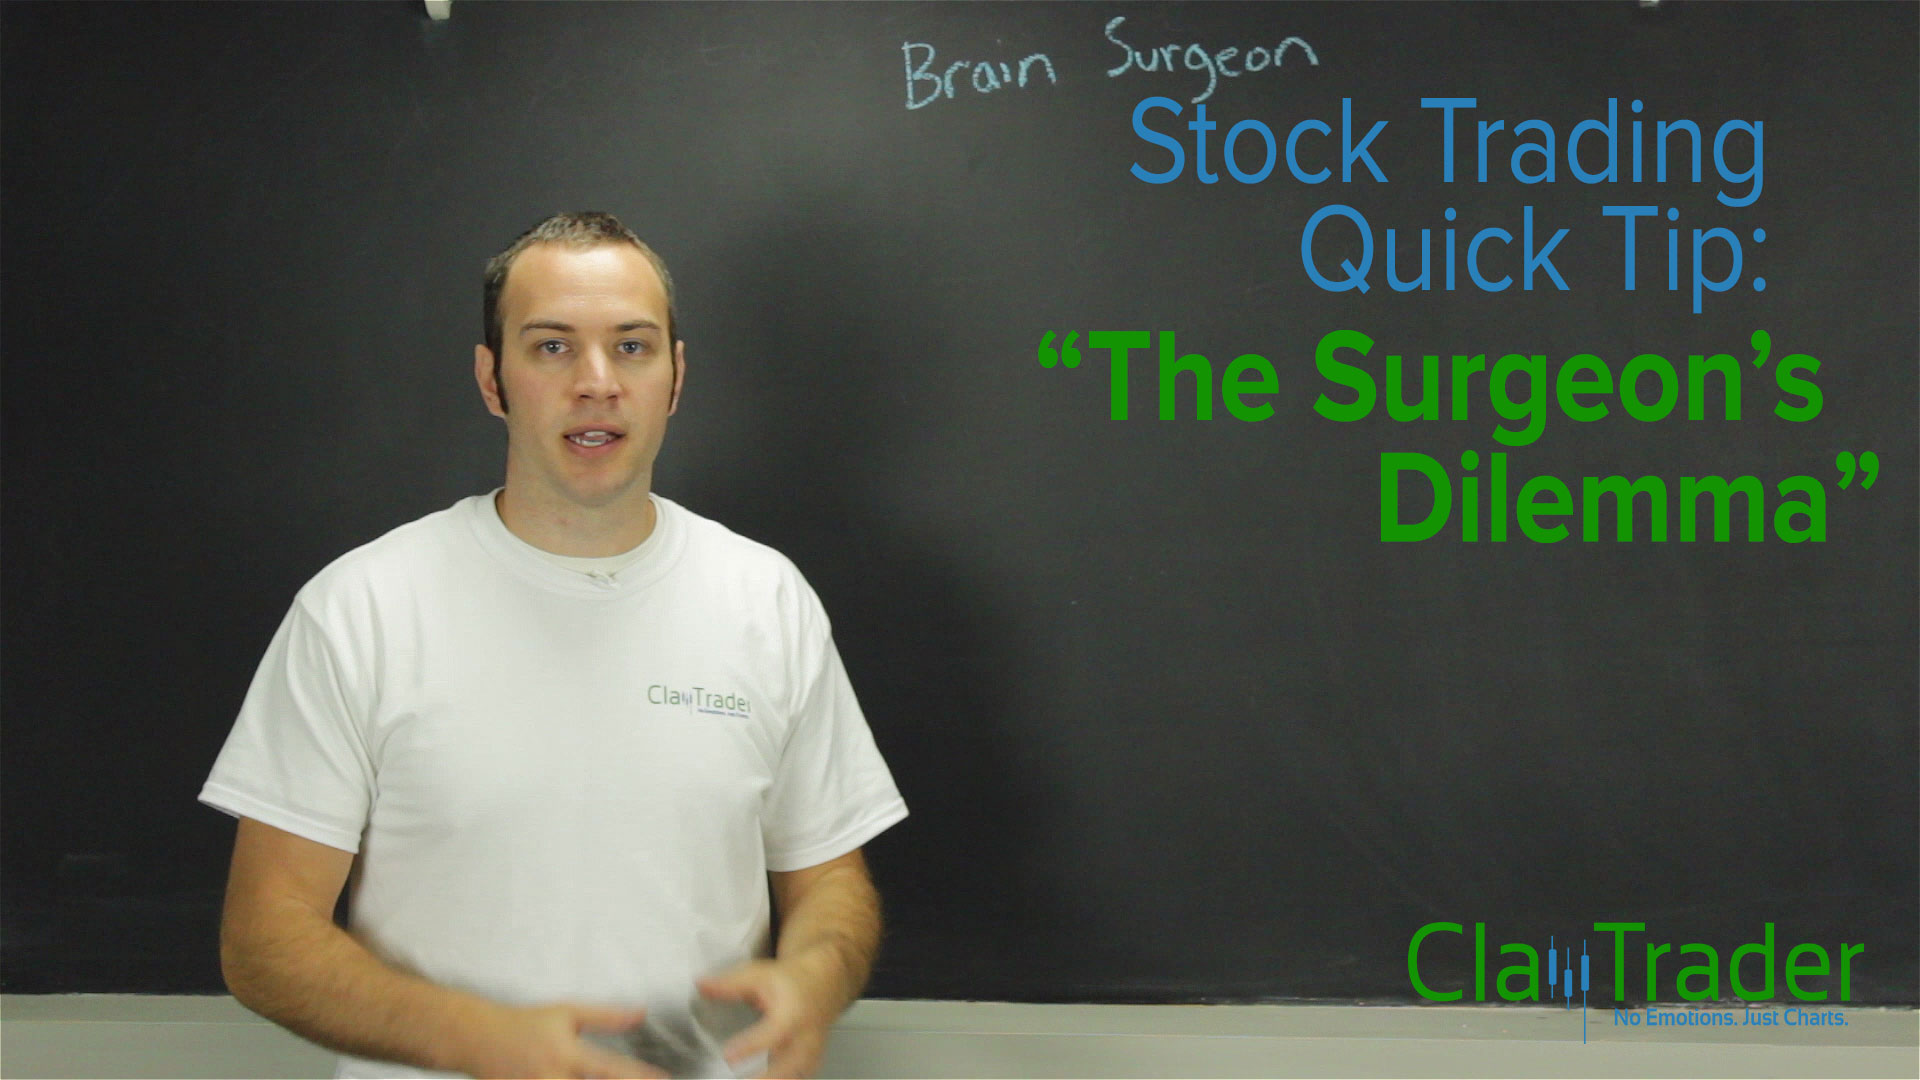 Stock Trading Quick Tip: The Surgeons Dilemma